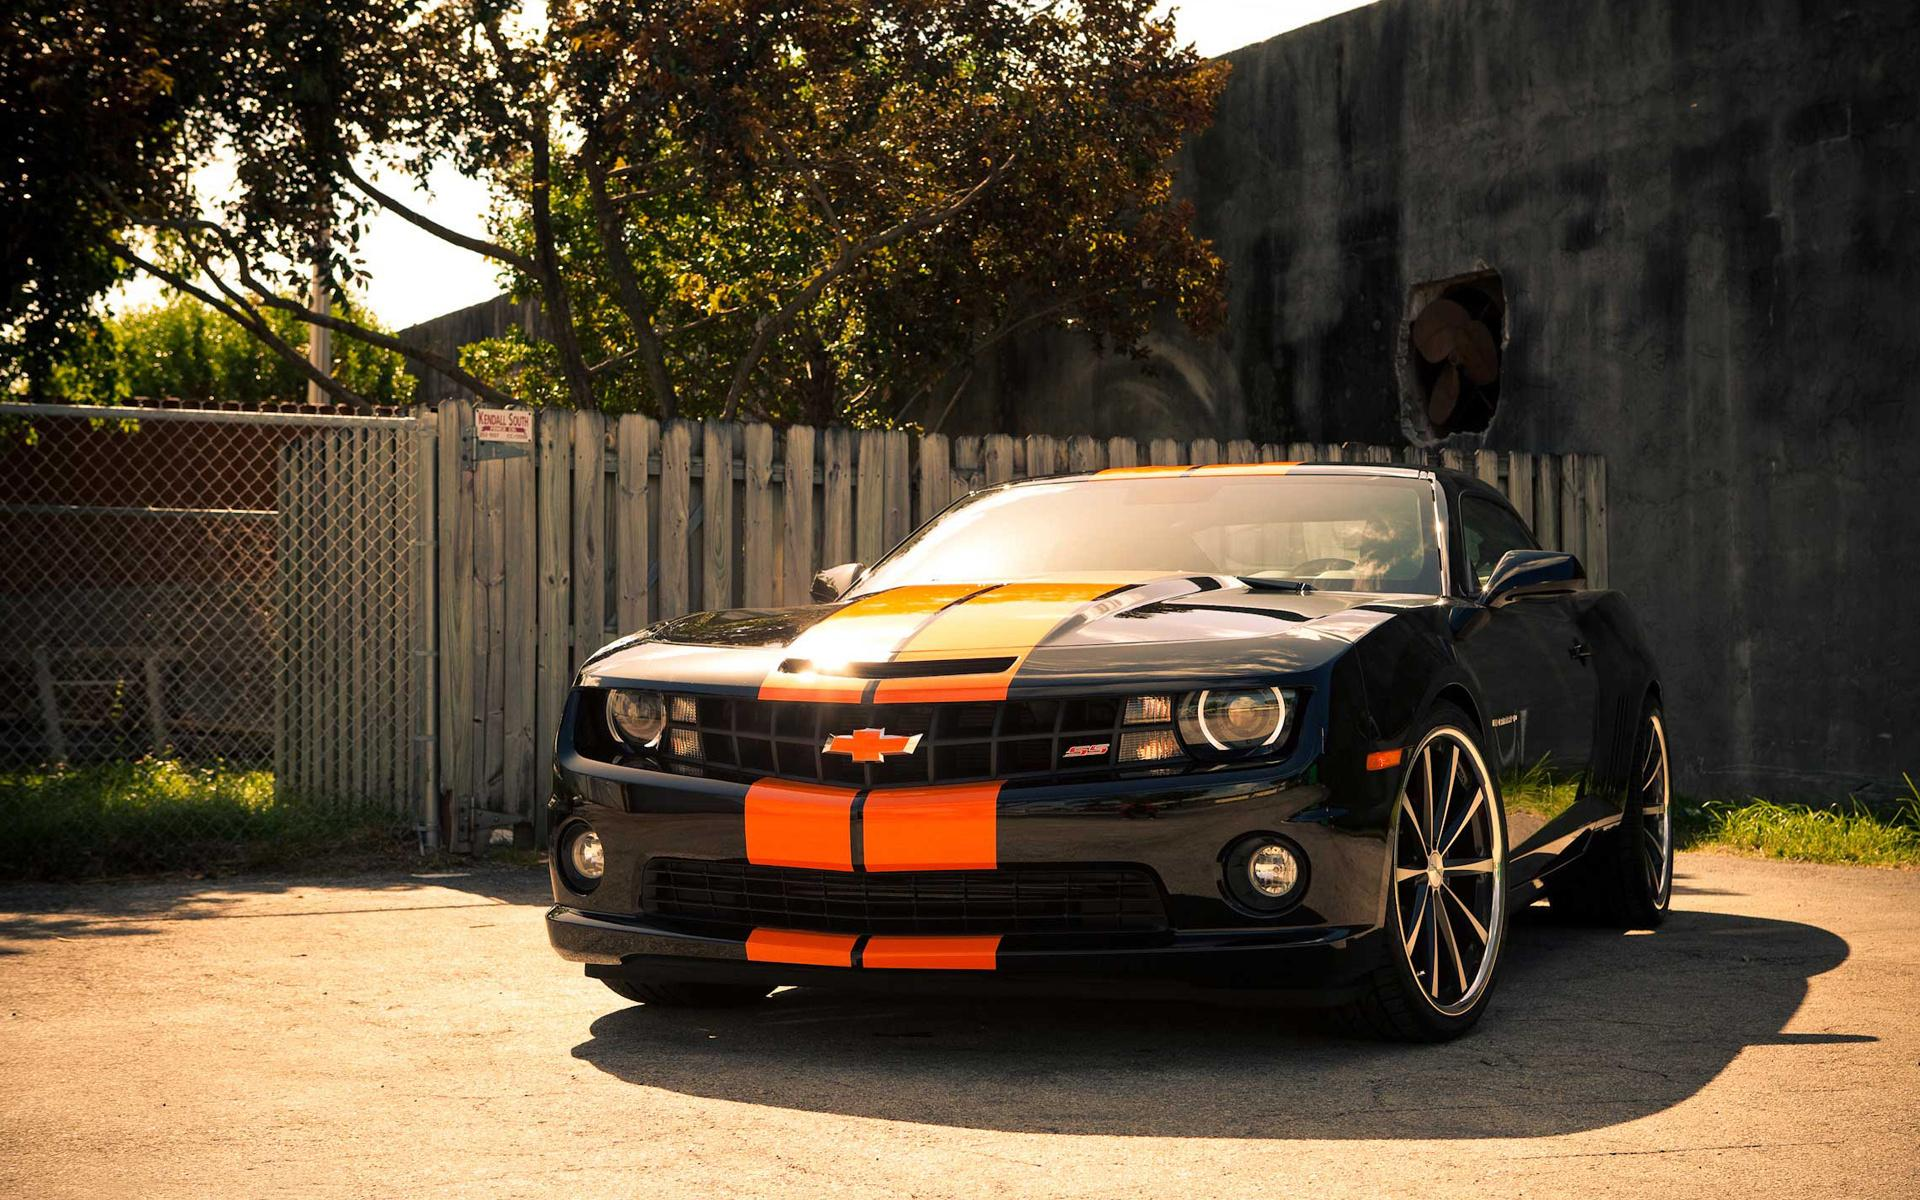 Chevrolet Camaro SS Car Wallpapers HD Wallpapers 1920x1200